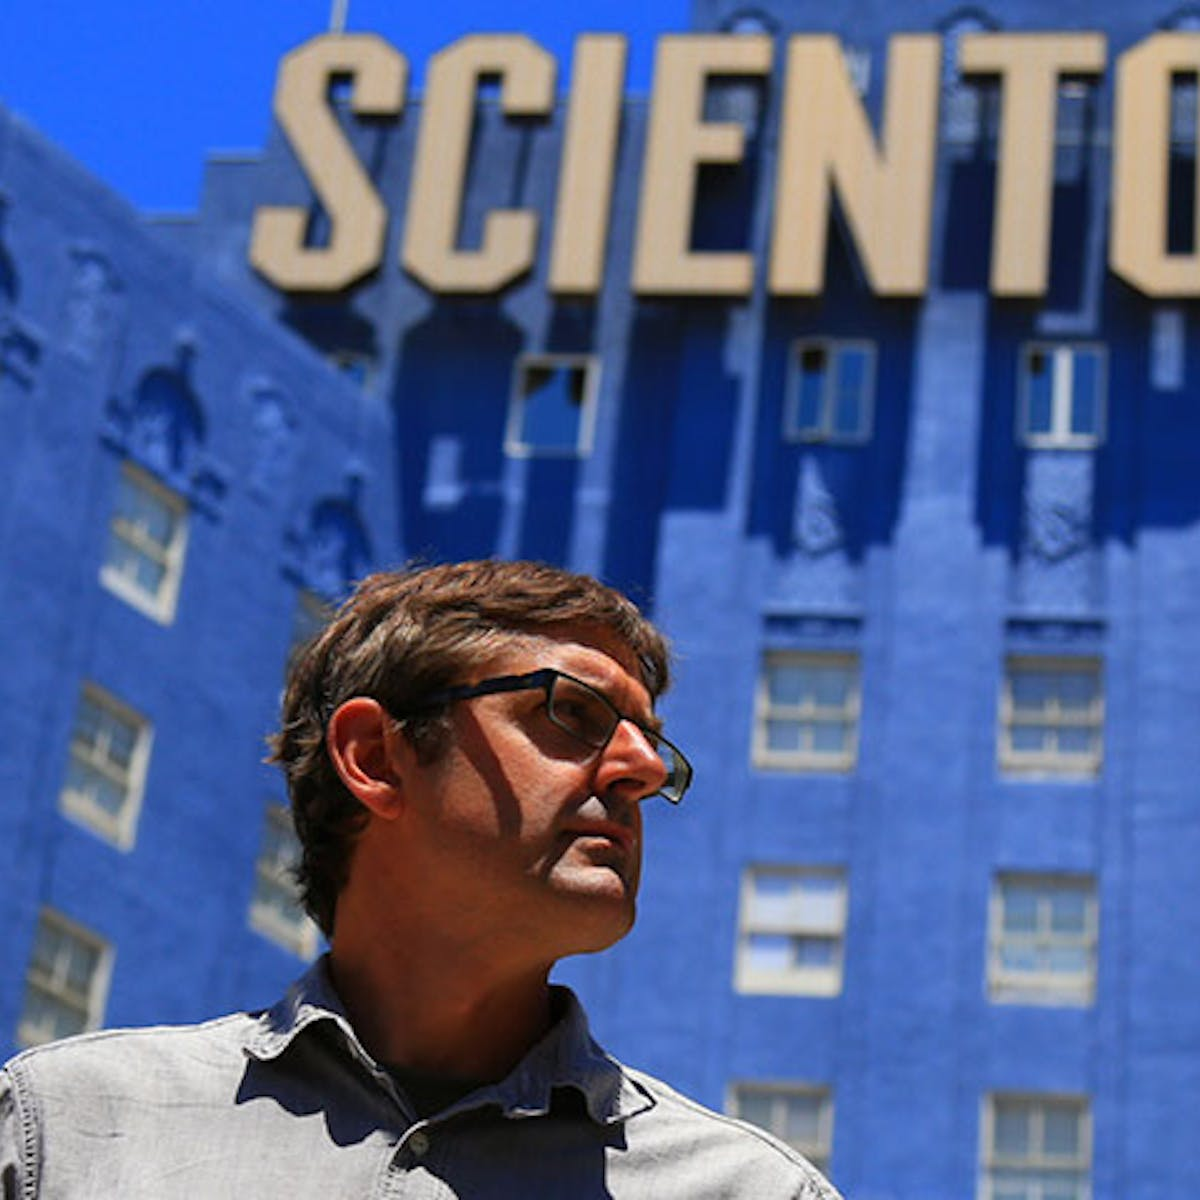 My Scientology Movie: a perceptive mix of psychological drama and